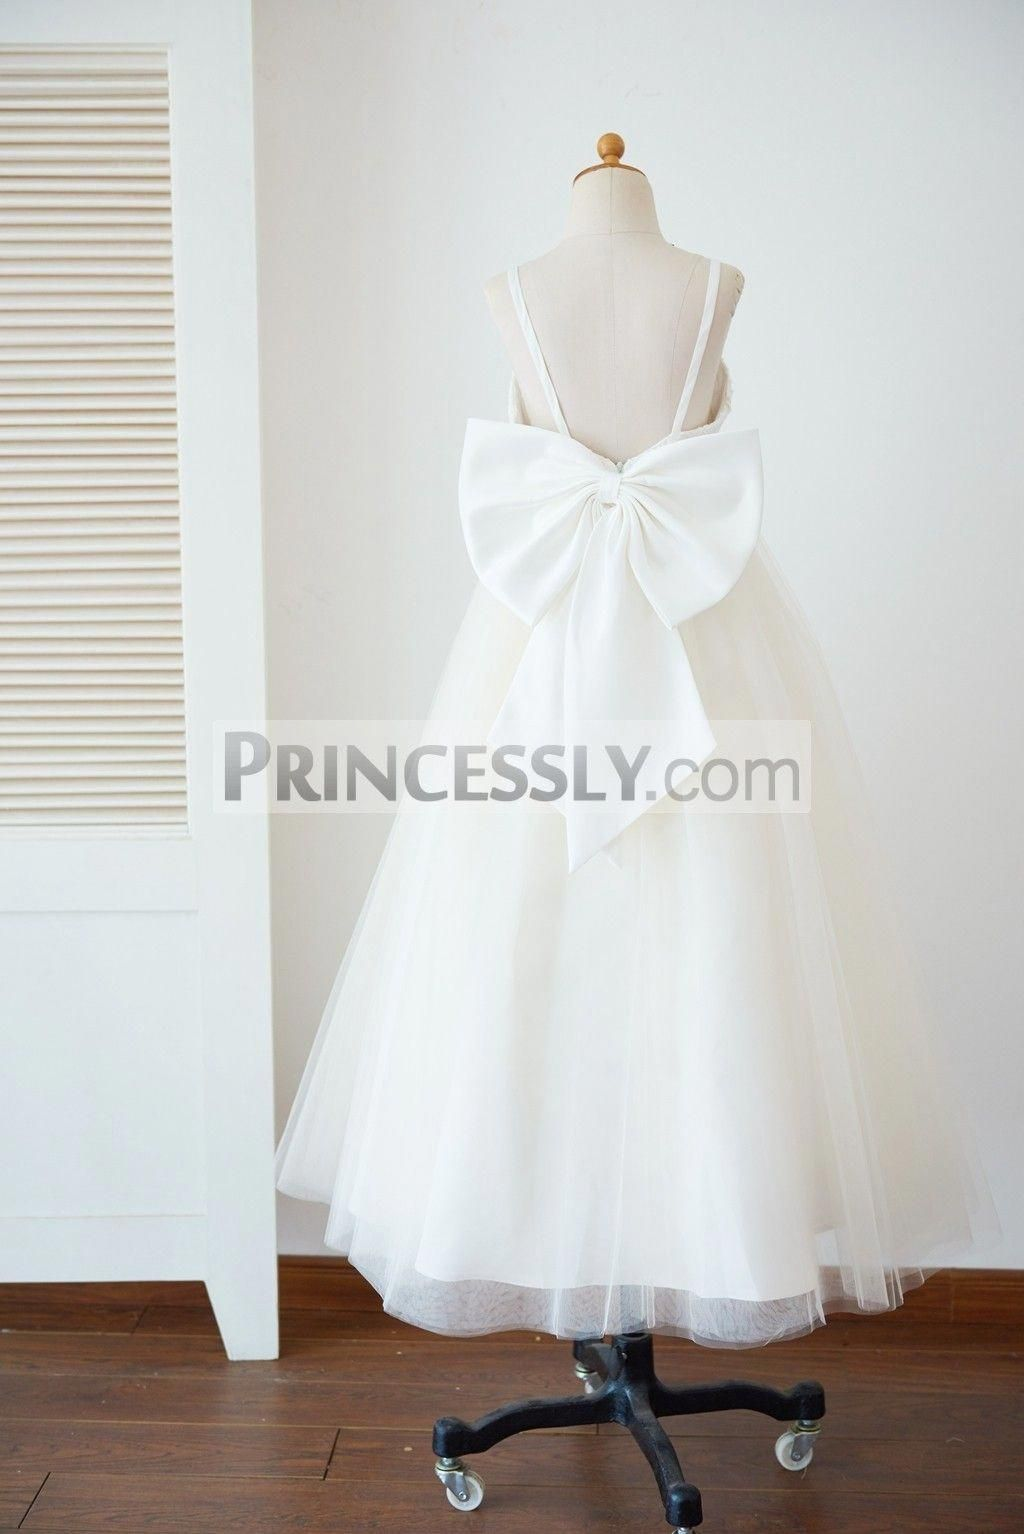 93abd6f2285 Princessly.com-K1003630-Spaghetti Straps Ivory Lace Champagne Tulle  Backless Wedding Flower Girl